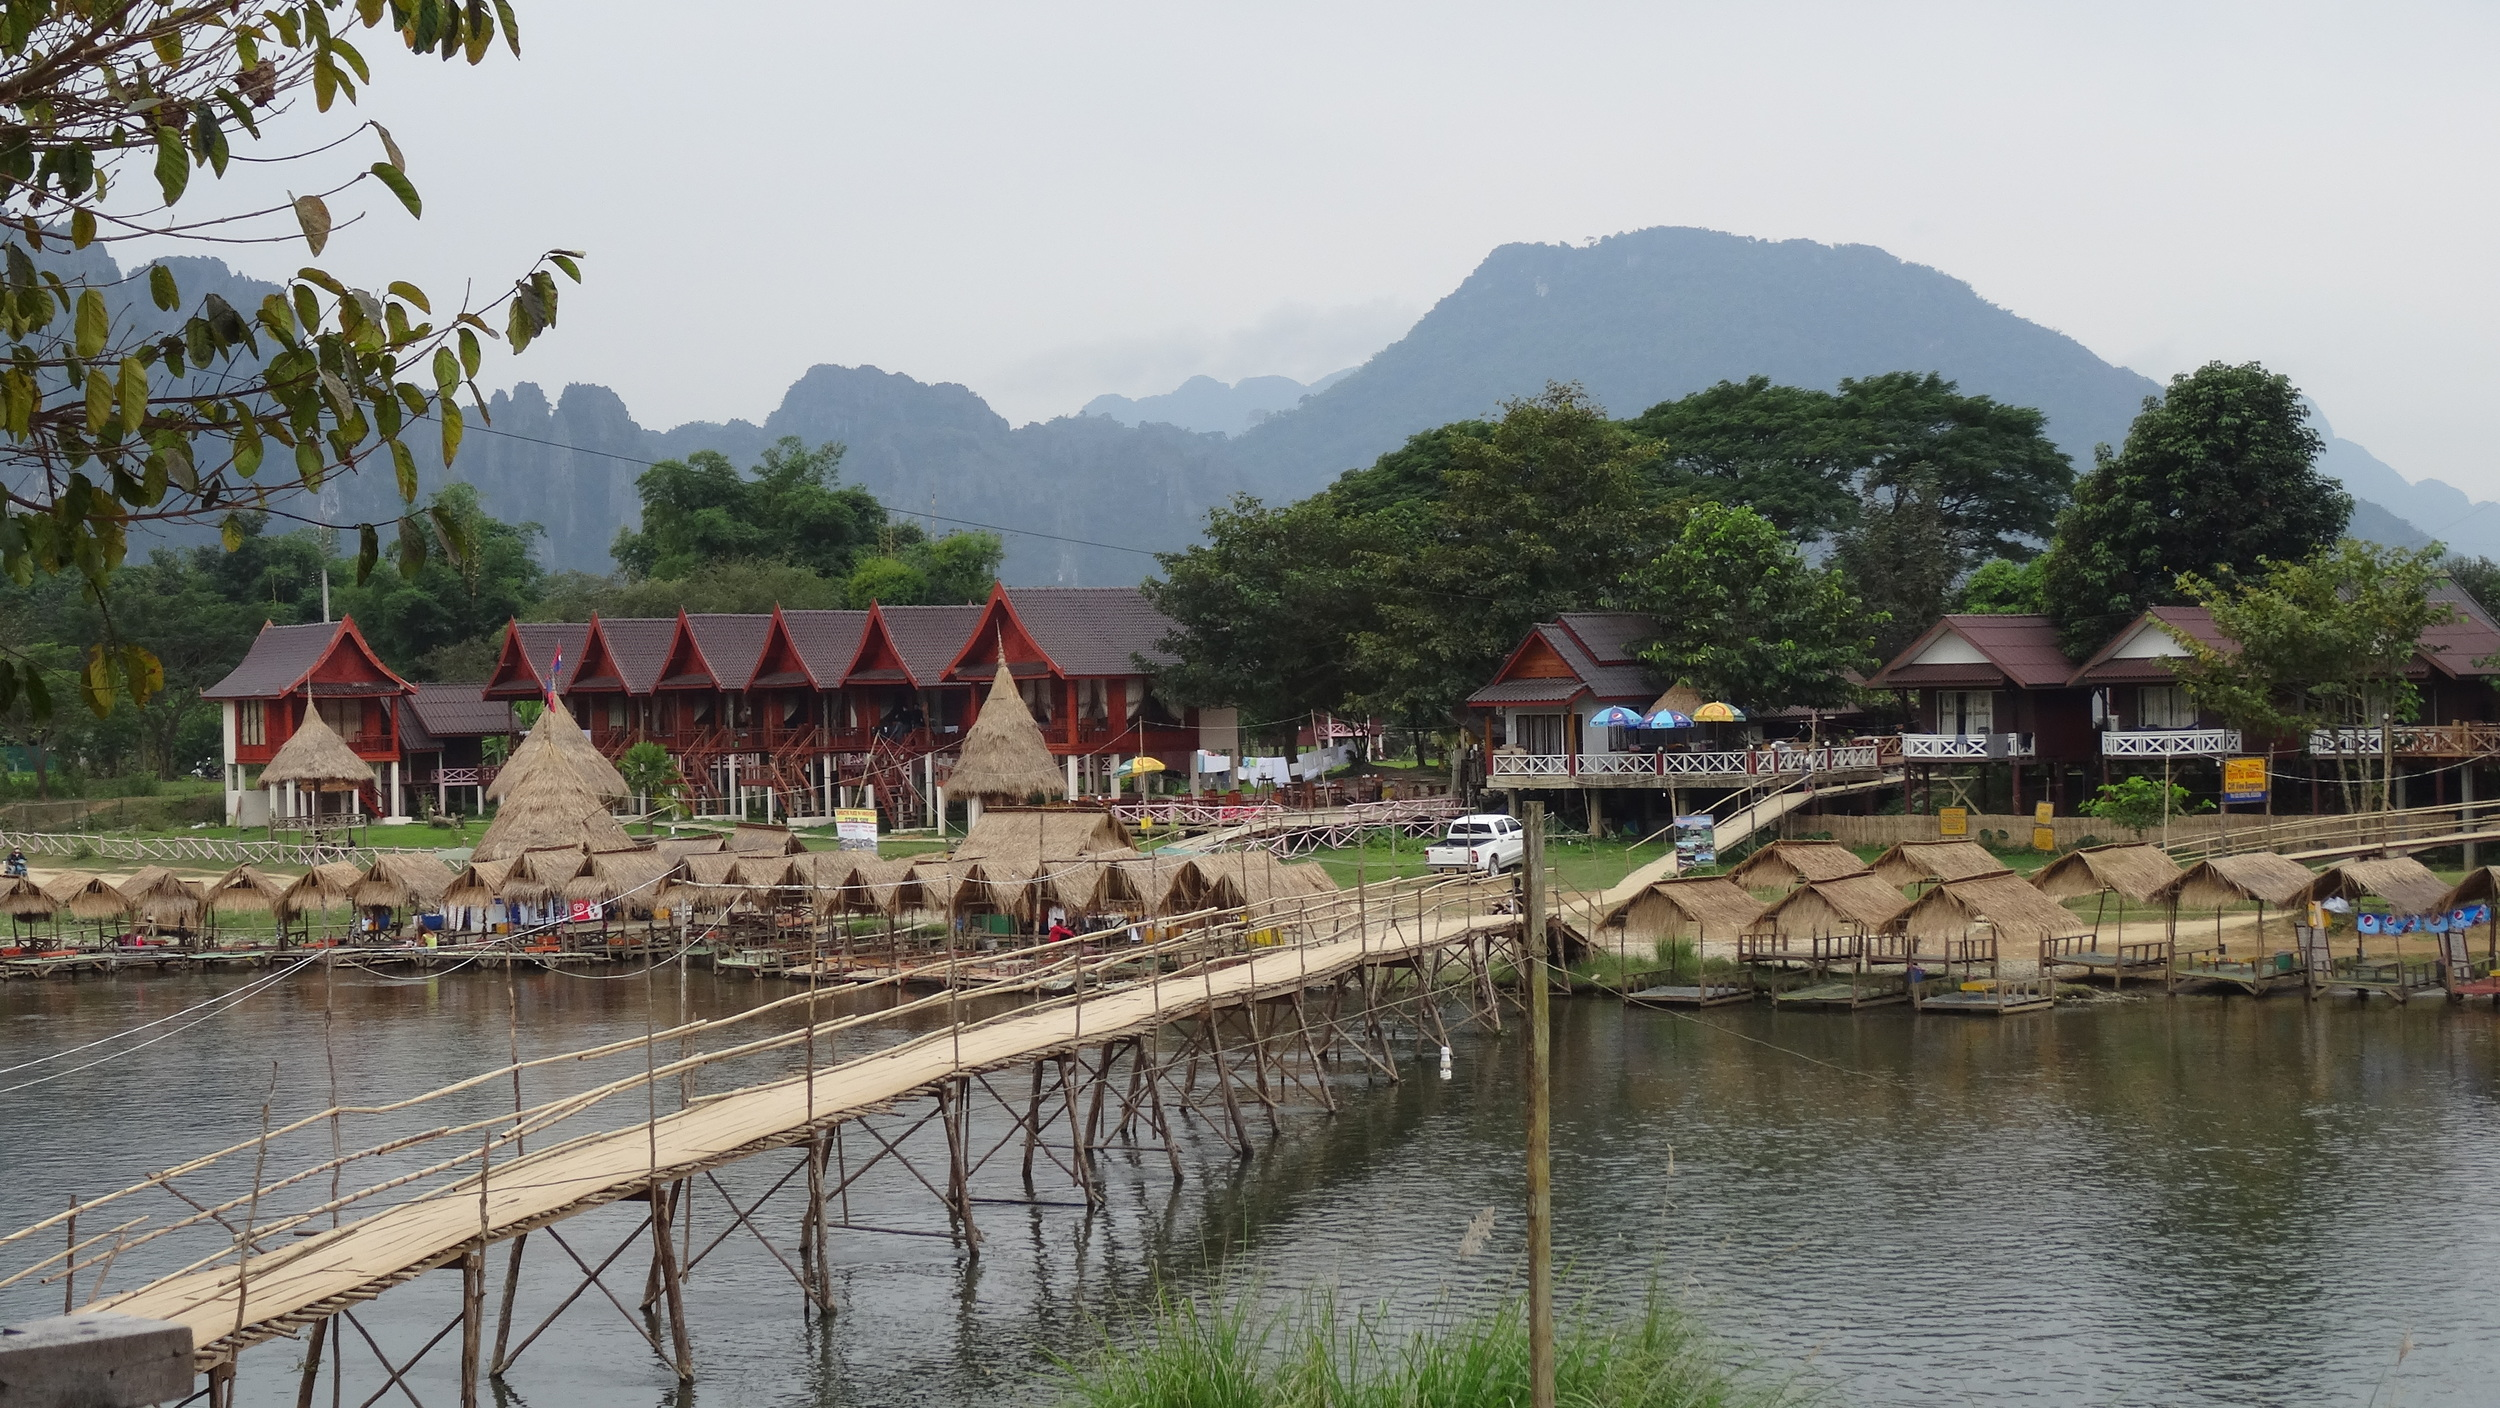 Our little place in Vang Vieng, Laos.